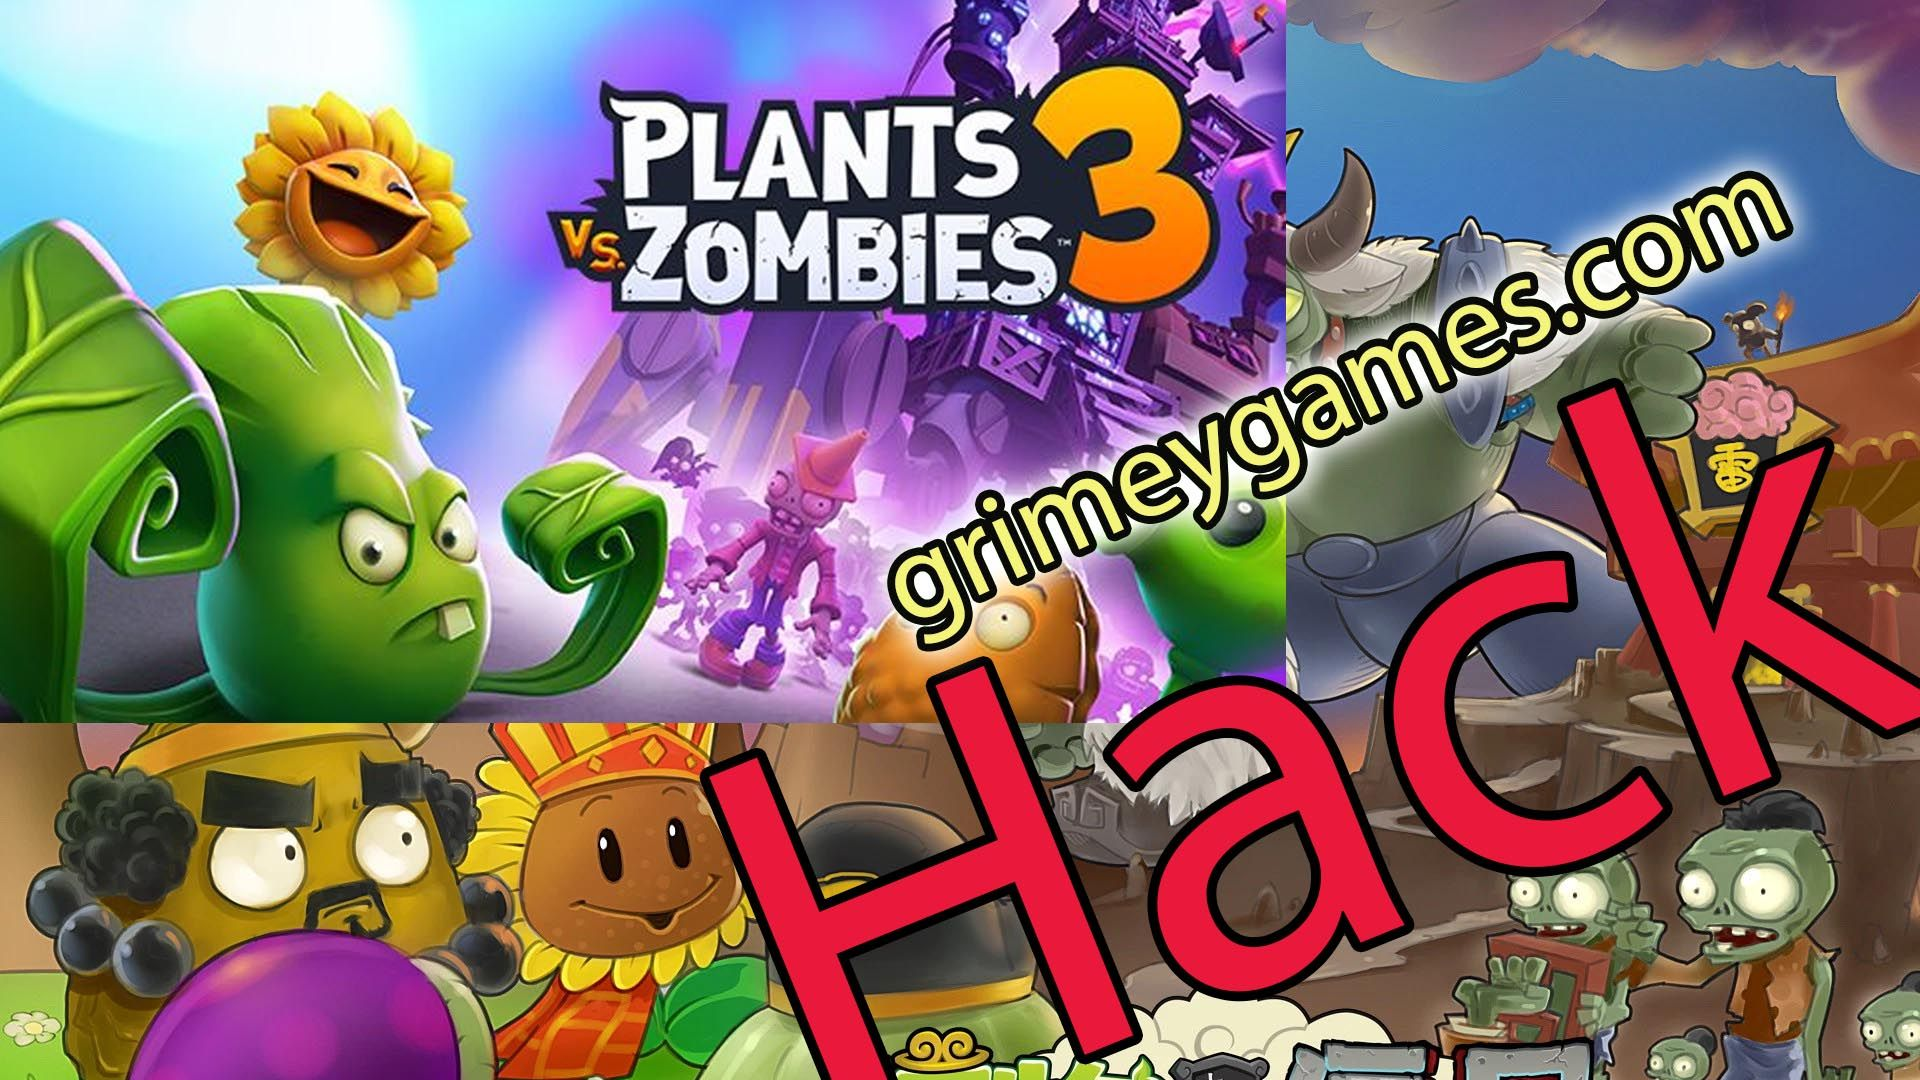 Plants Vs Zombies 2 Hacks To Hack Free Coins And Gems Easy To Use